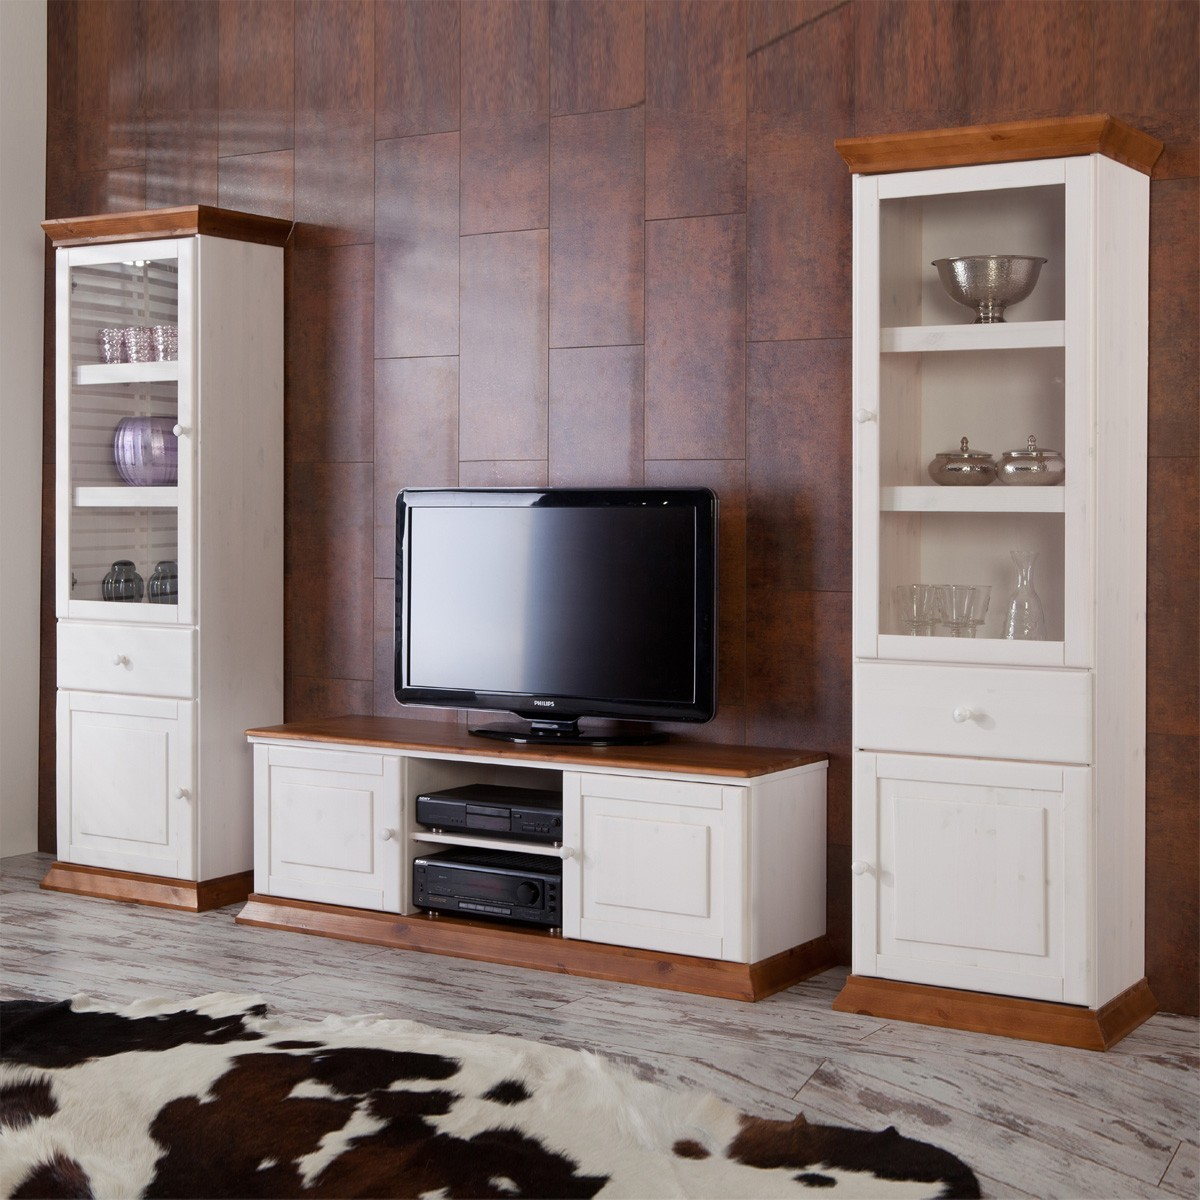 wohnwand landhaus wohnzimmer boston in wei cognac ebay. Black Bedroom Furniture Sets. Home Design Ideas